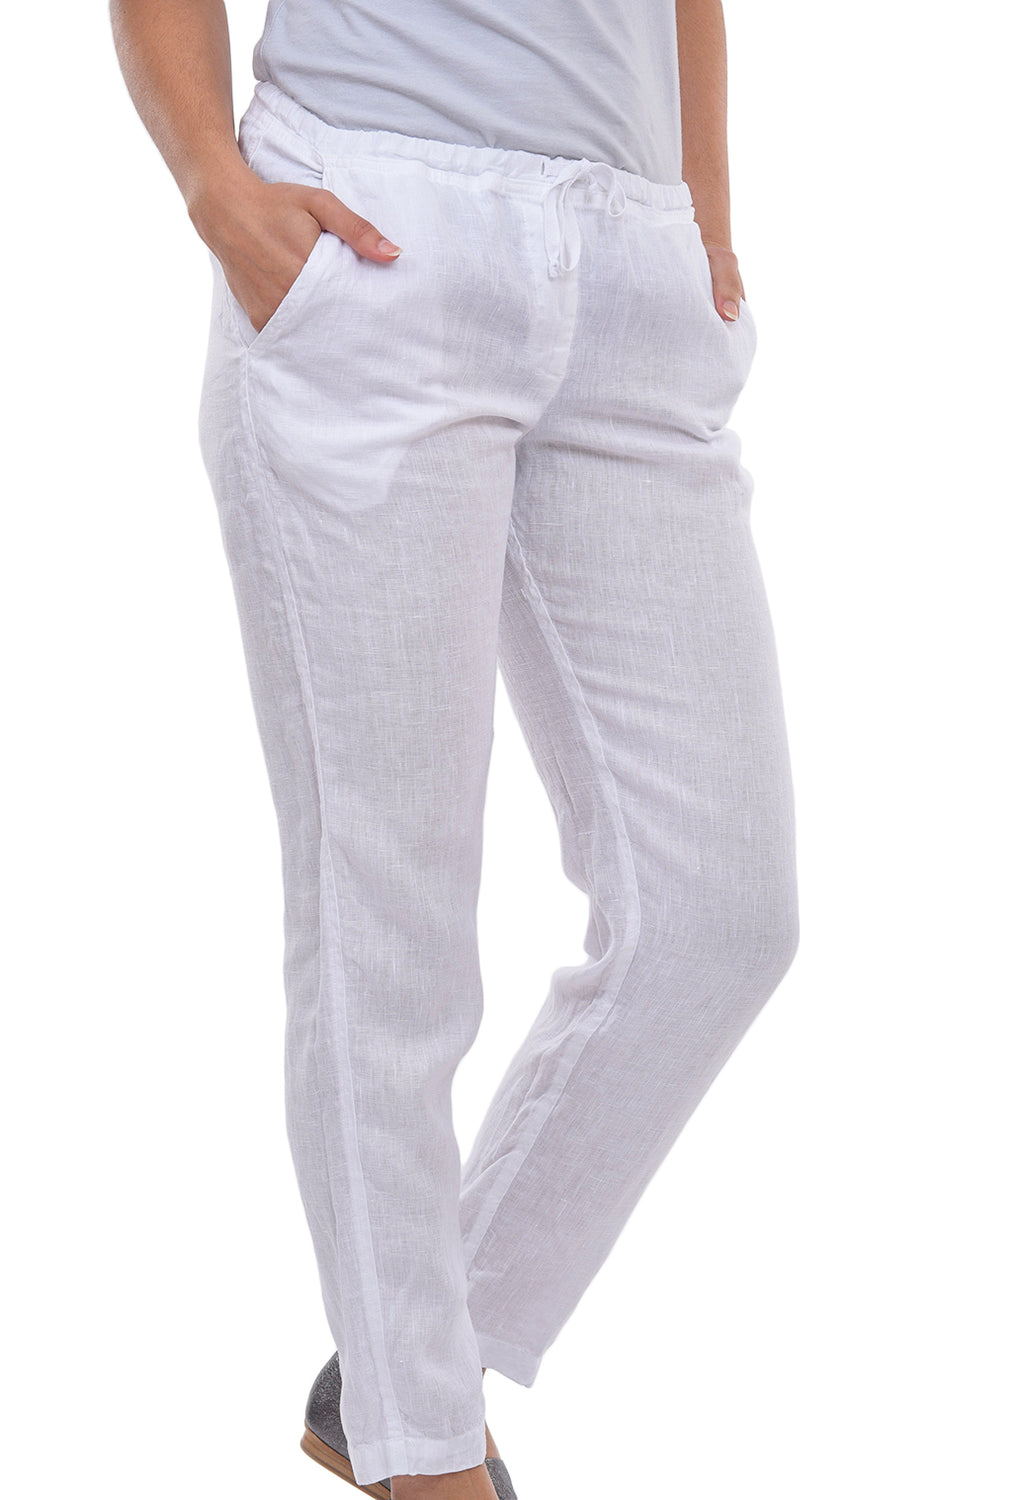 CP Shades Hampton Pants SS19, White